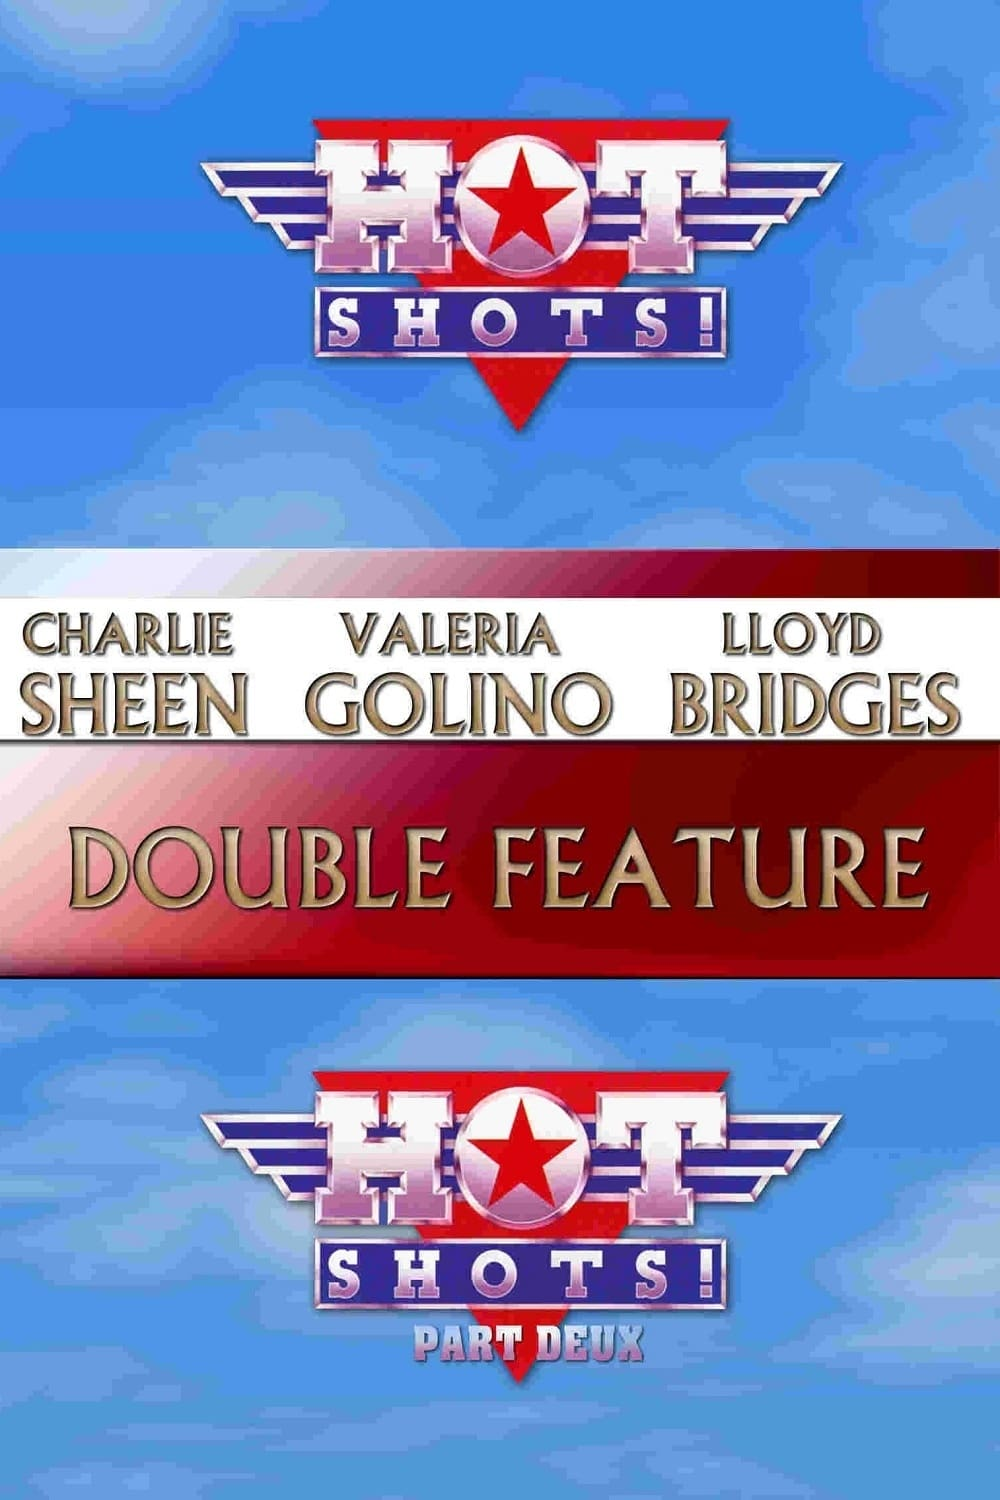 all movies from hot shots  collection saga are on movies